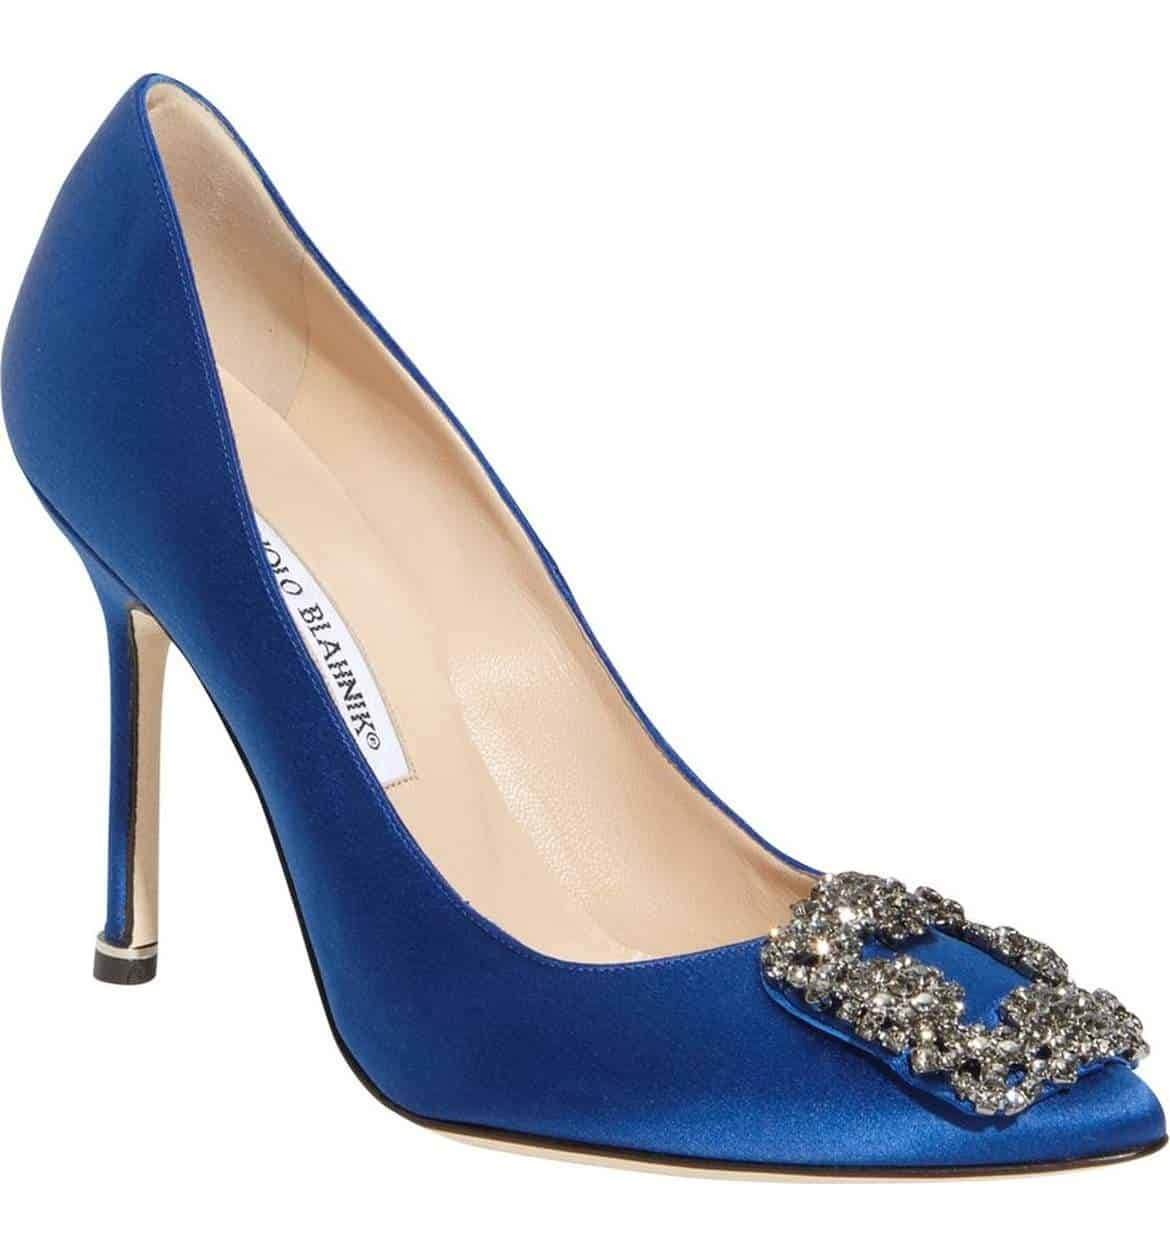 Manolo blahnik wedding shoes stylin on your big day for Shoes by manolo blahnik